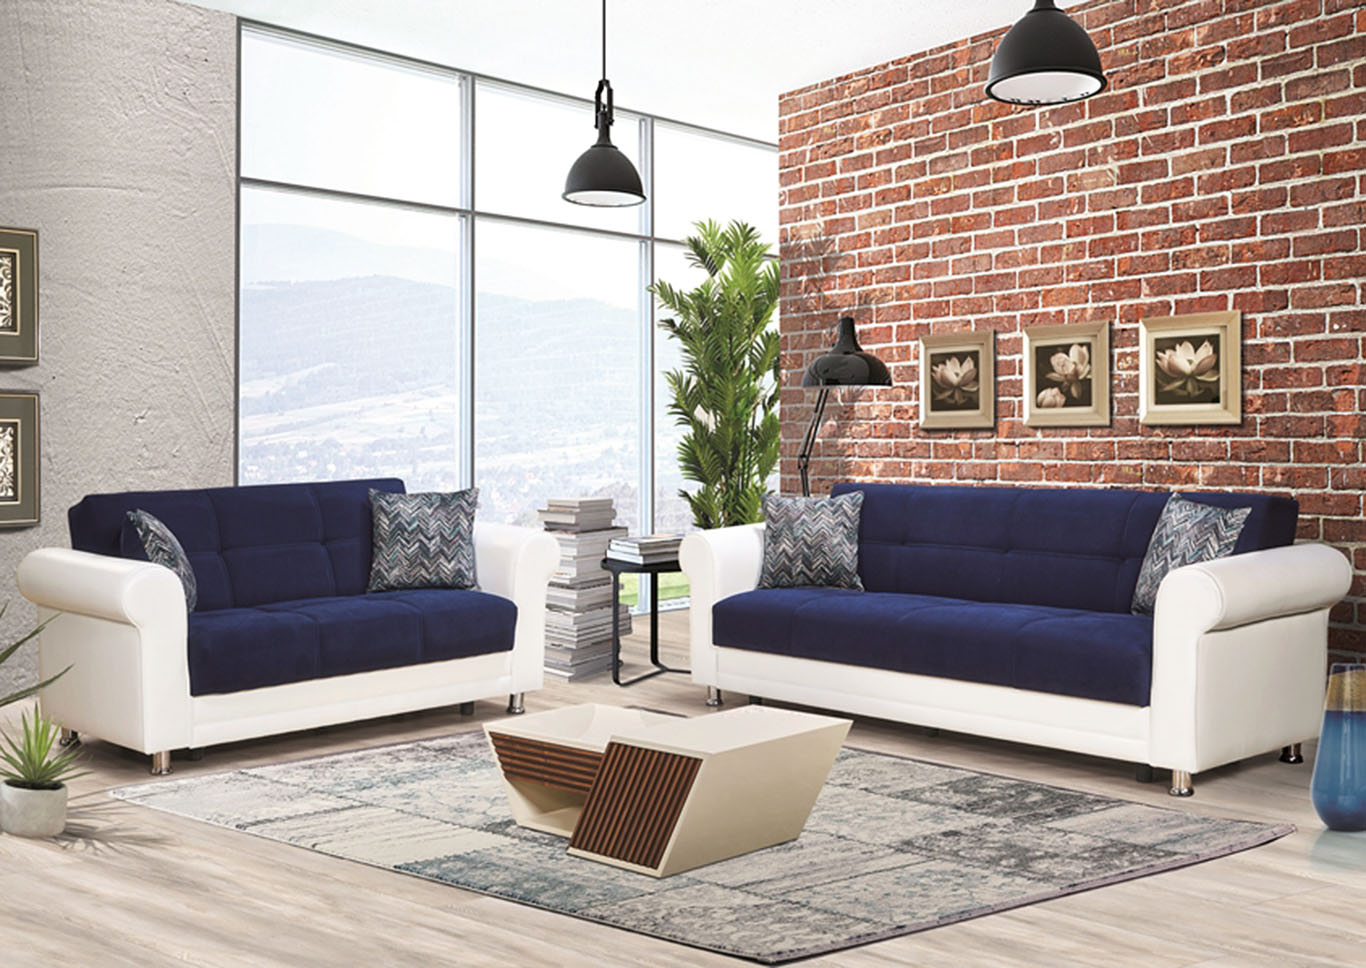 Avalanche Navy Blue Chenille Sofabed & Loveseat,CasaMode Functional Furniture